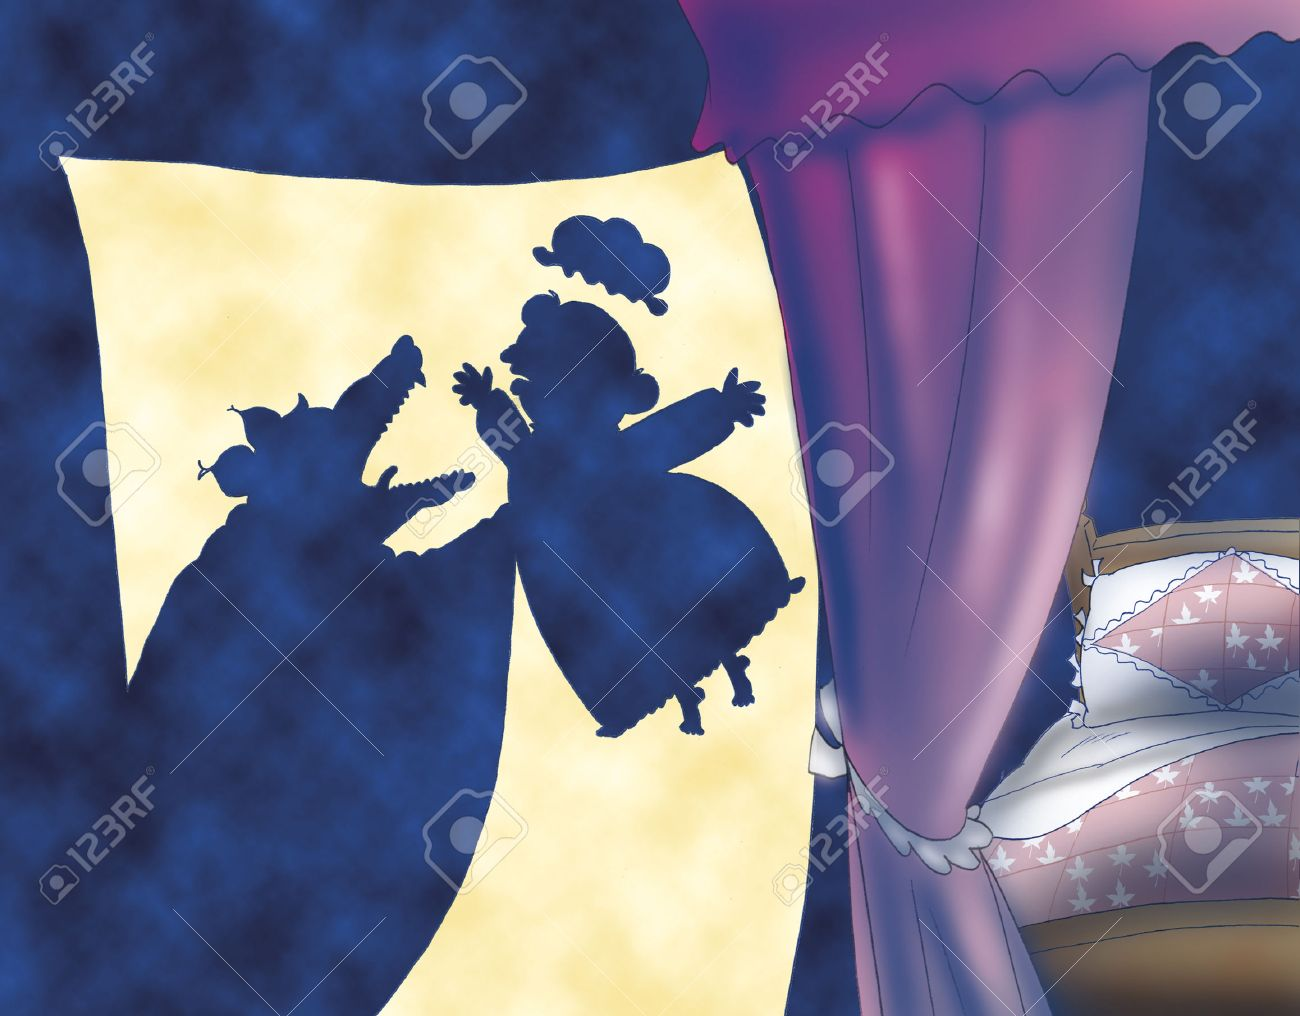 The wolf eating Red Riding Hood granny Stock Photo - 42035511